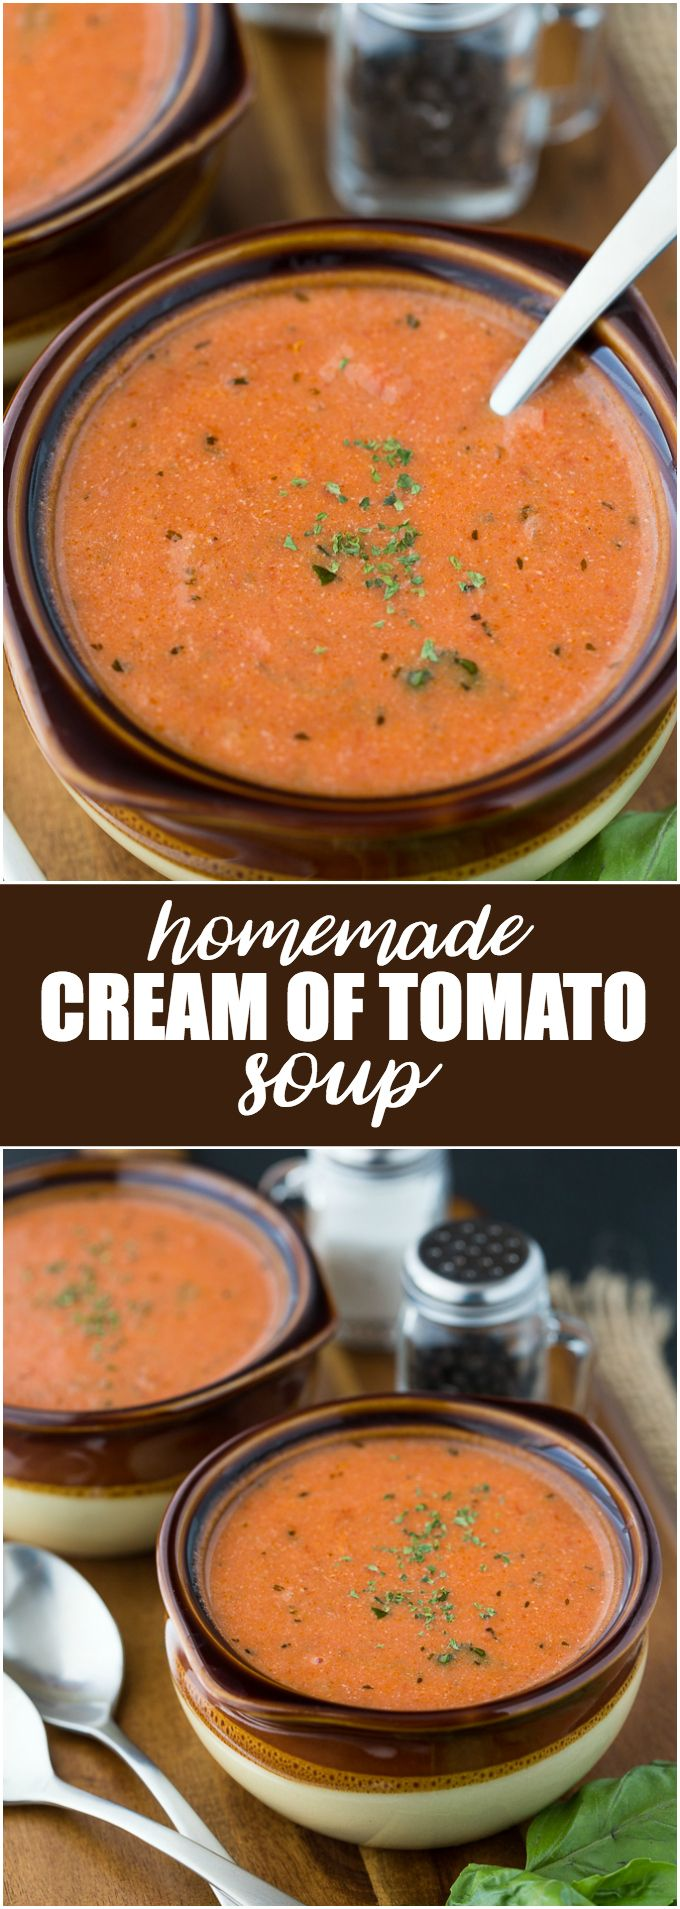 Homemade Cream of Tomato Soup - Hot and tasty and made with a few simple ingredients!